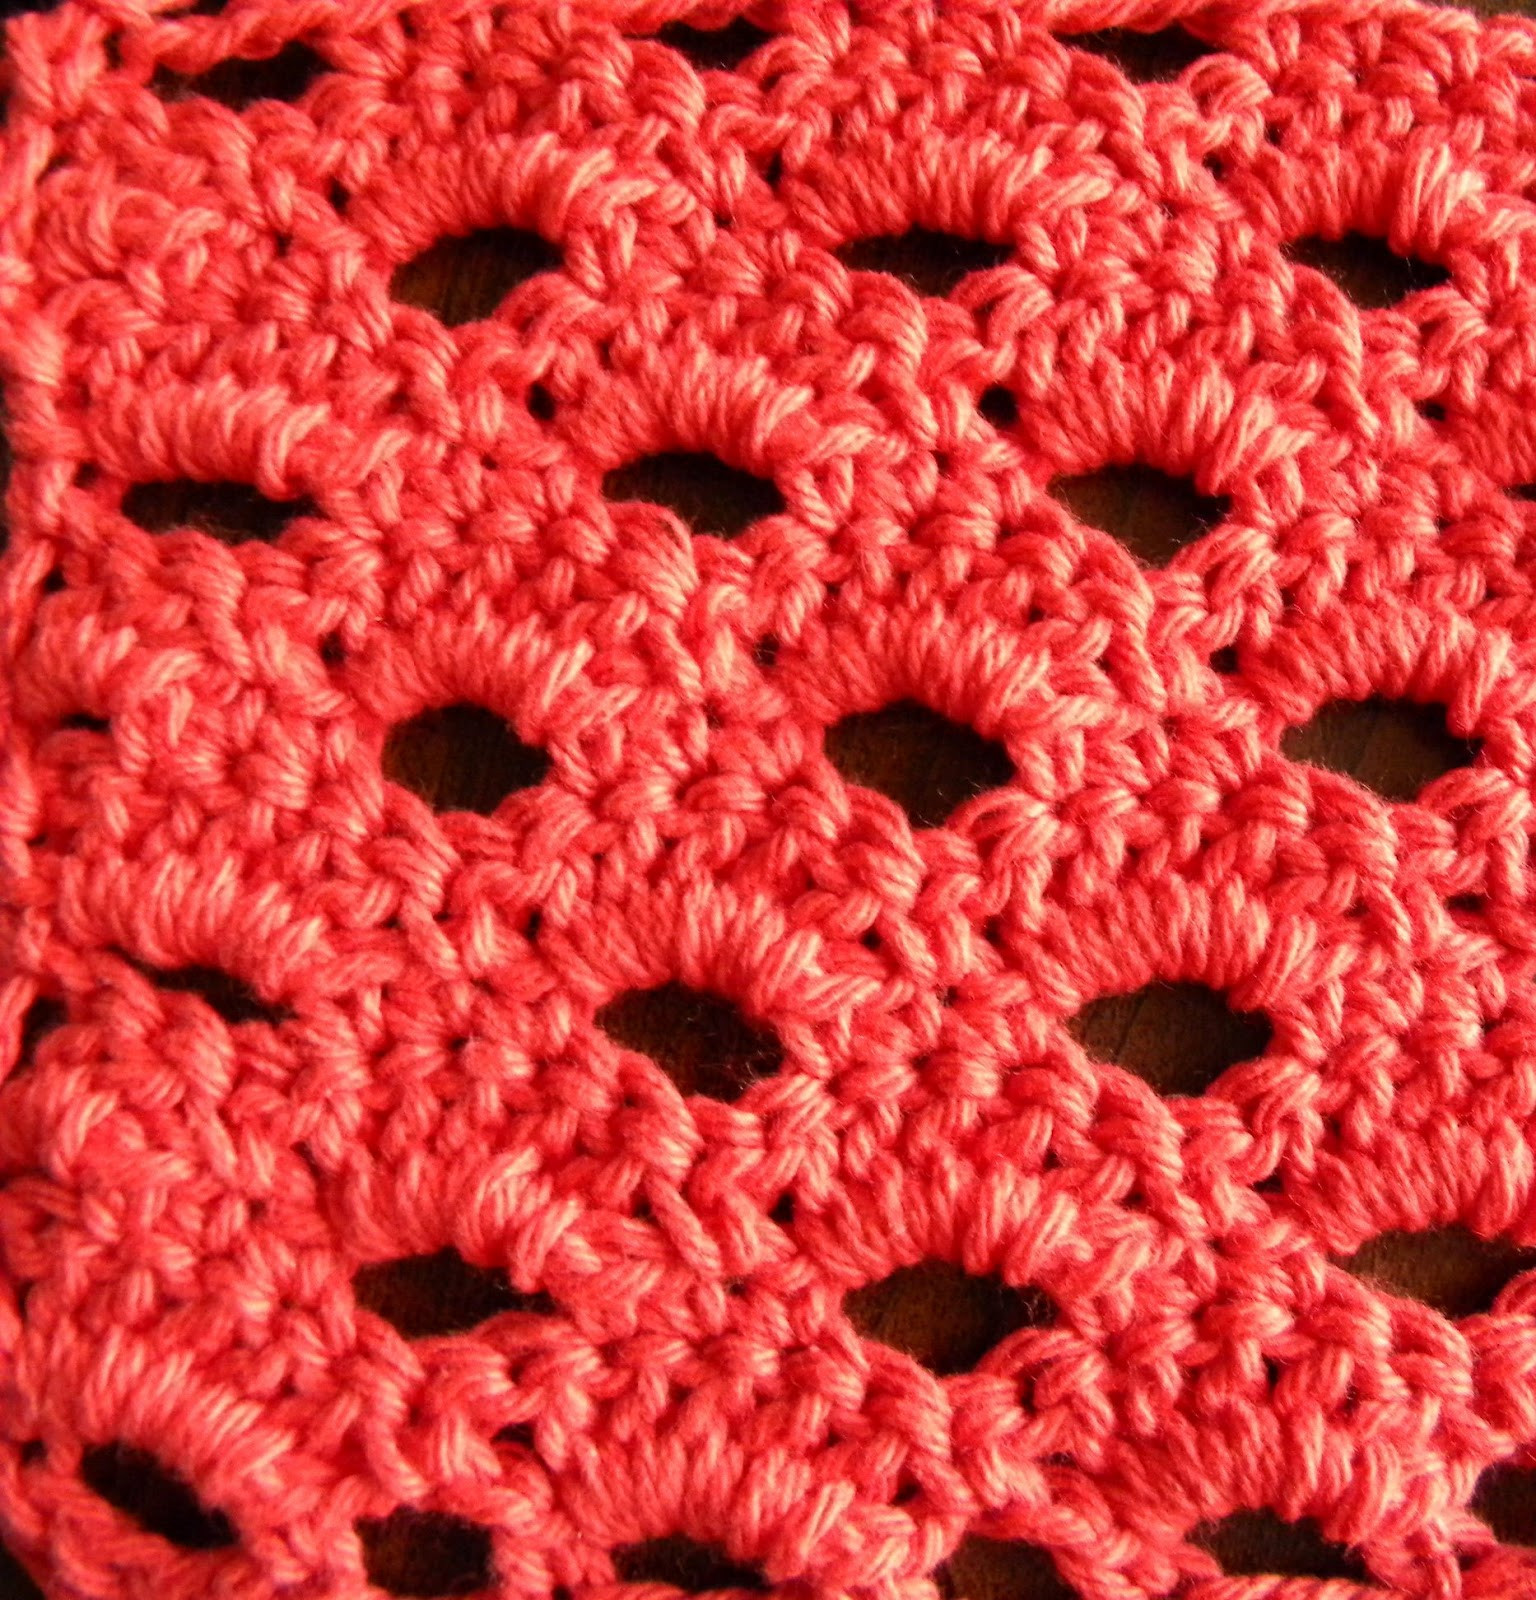 Best Of Crochet Stitches Video Search Engine at Search Crochet Stitches with Pictures Of Marvelous 46 Photos Crochet Stitches with Pictures